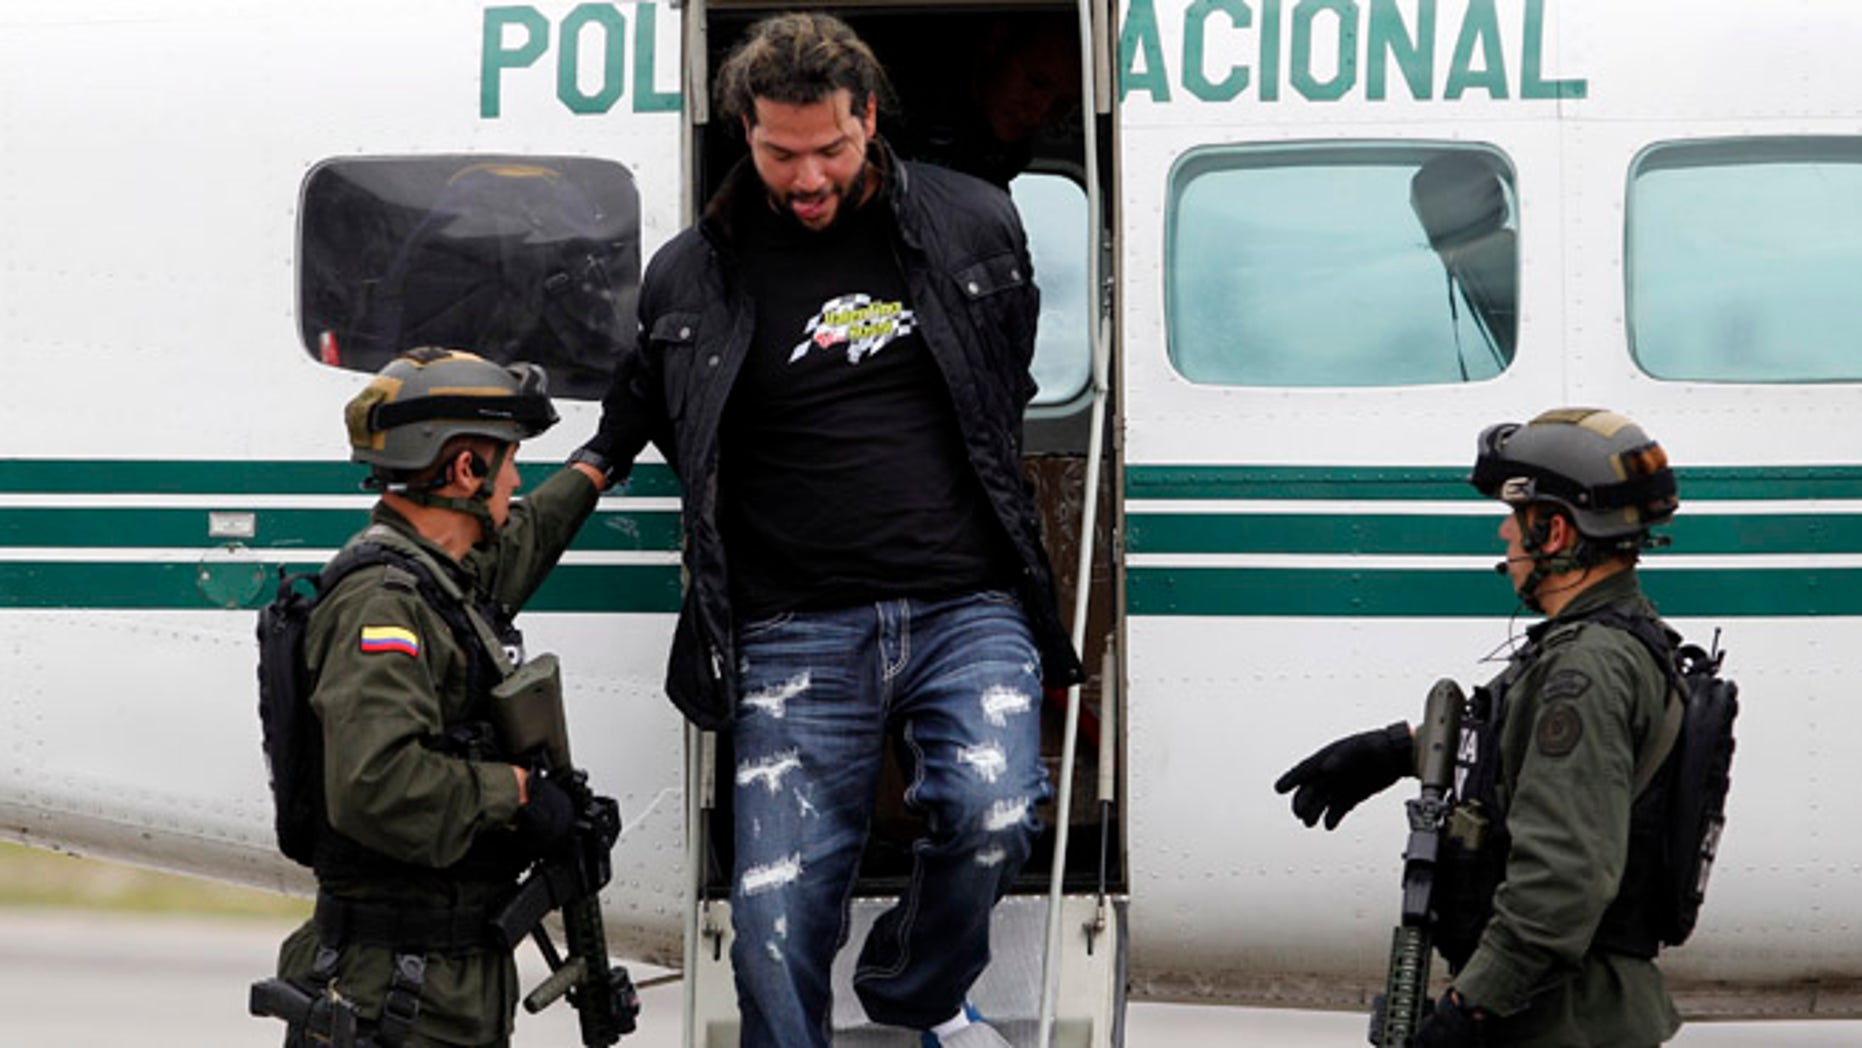 """Aug. 8, 2012: Police escort from a plane alleged drug trafficker Erickson Vargas Cardona, alias """"Sebastian,"""" described as the boss of the """"Office of Envigado,"""" as he walks down the stairs in handcuffs at a police station inside the airport in Bogota, Colombia."""